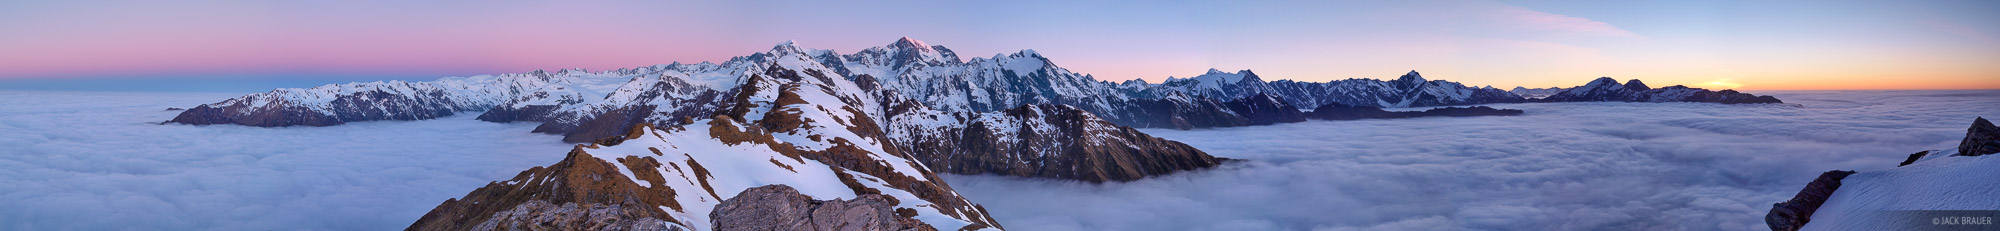 Southern Alps, panorama, Mt. Cook, Tasman Sea, New Zealand, photo